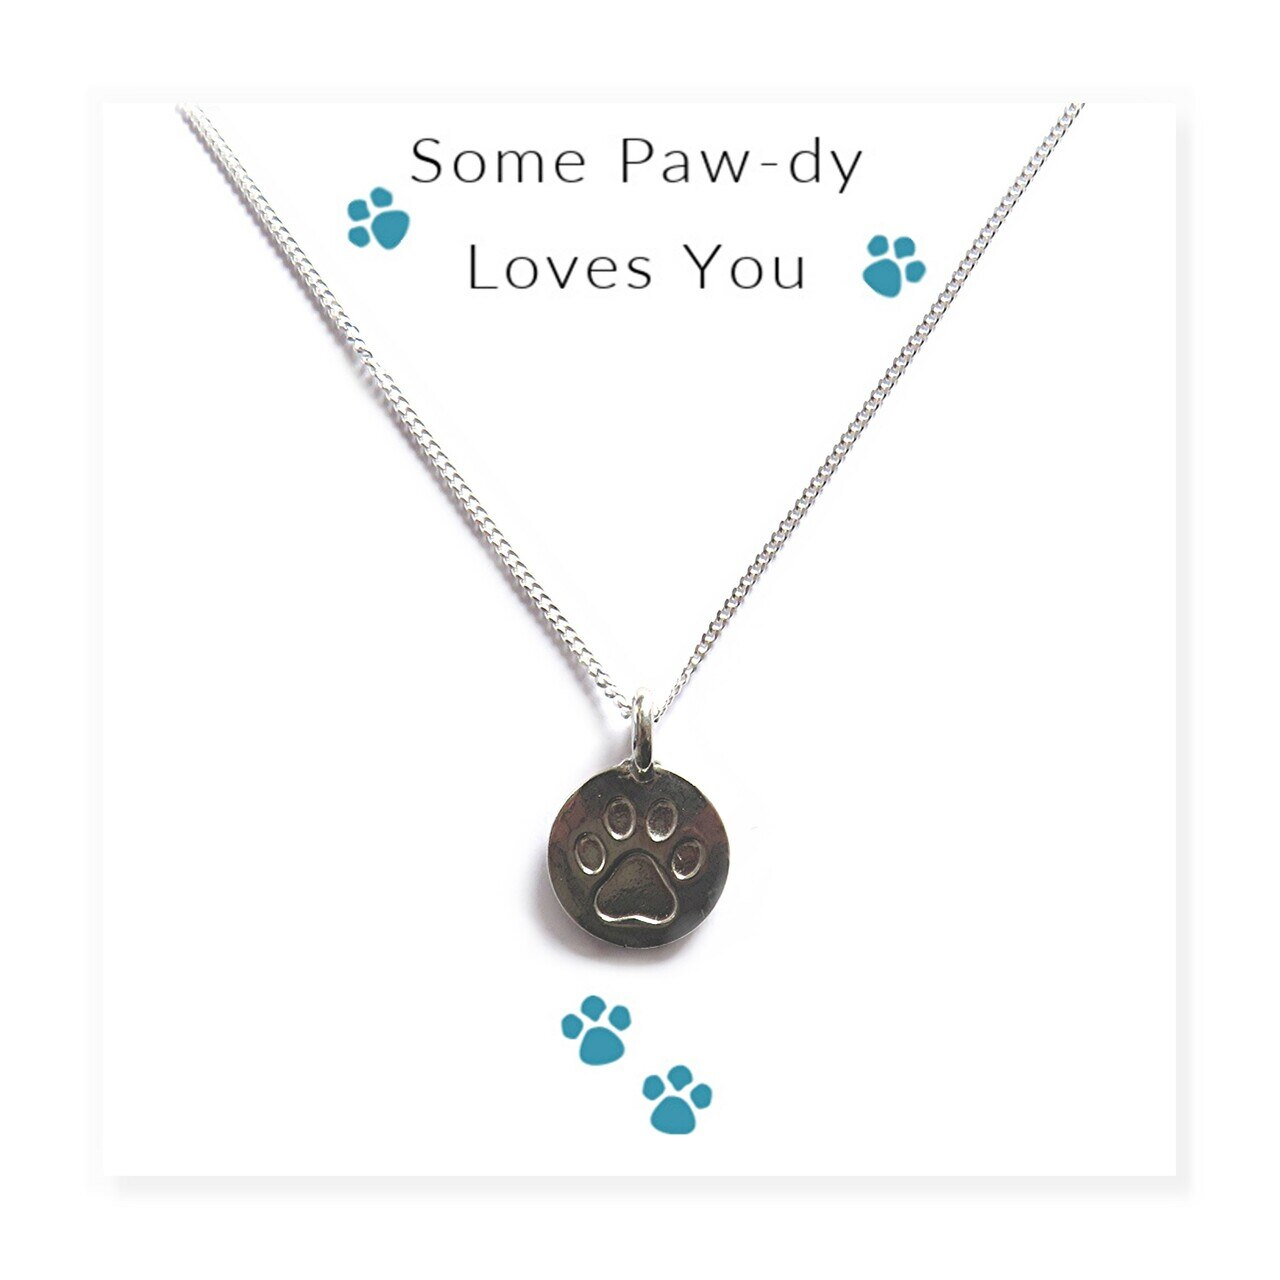 Some Paw-dy Loves You - Necklace on Message Card